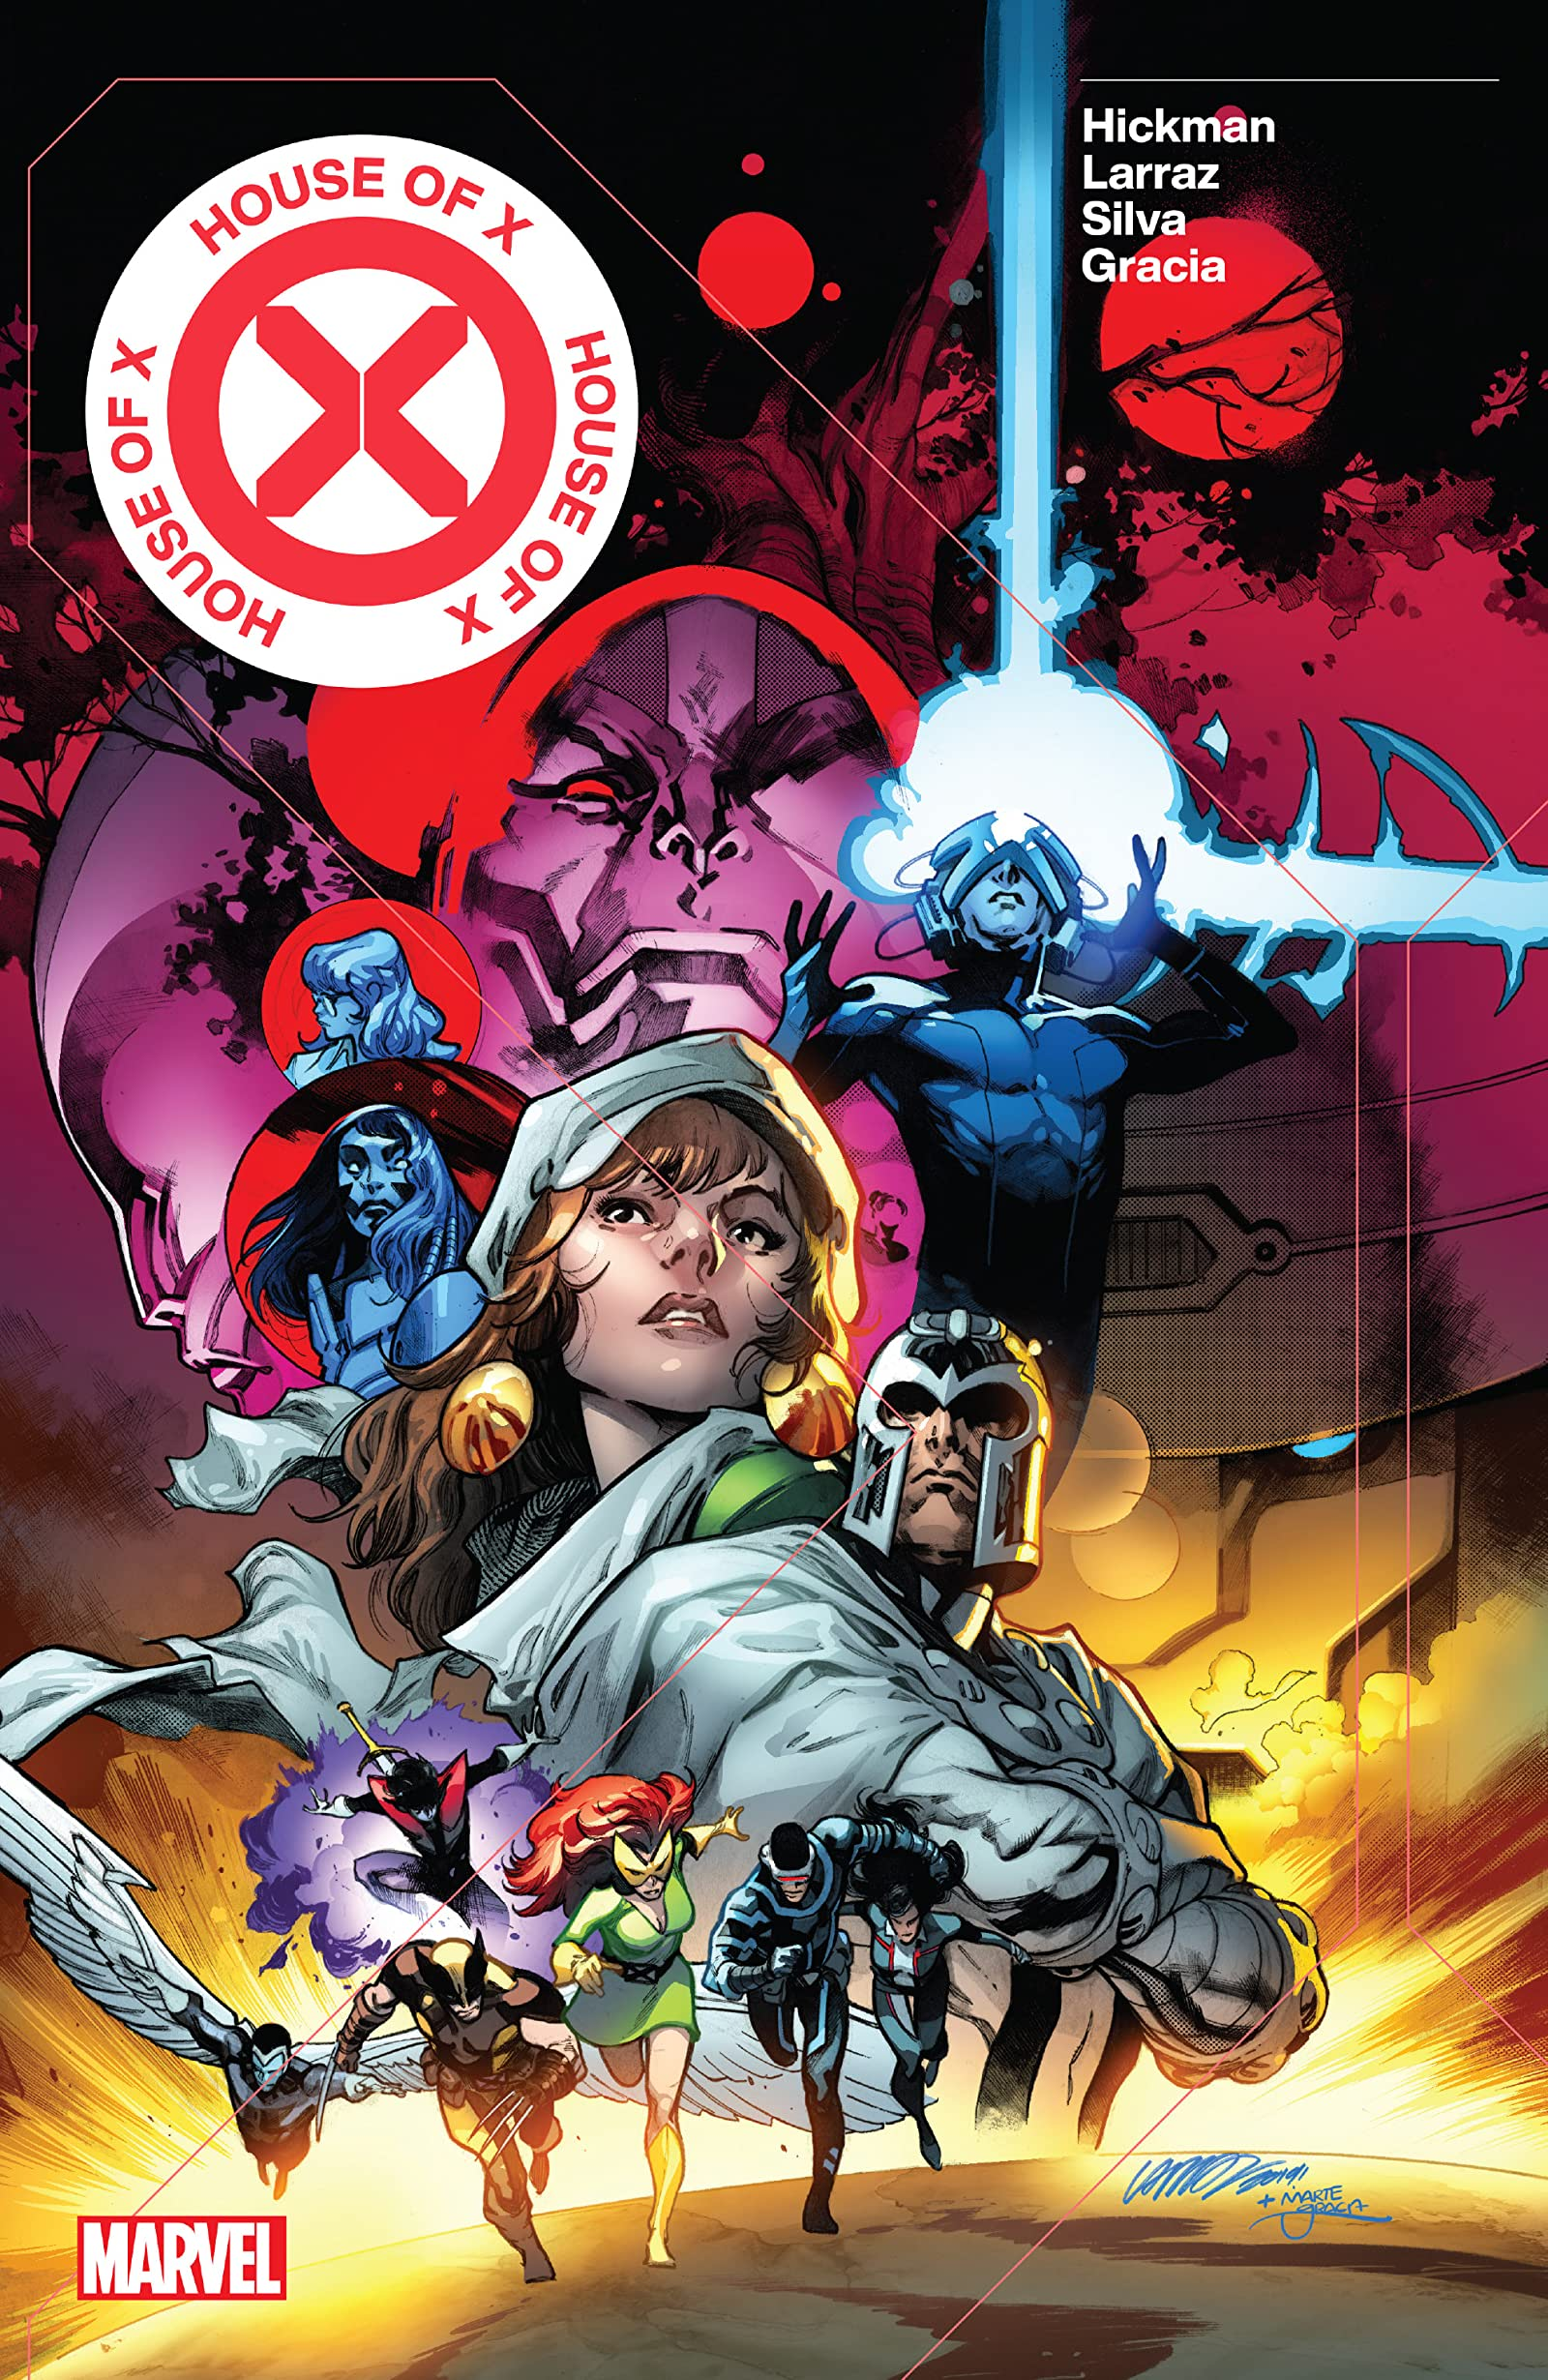 House Of X/Powers Of X - Comics by comiXology